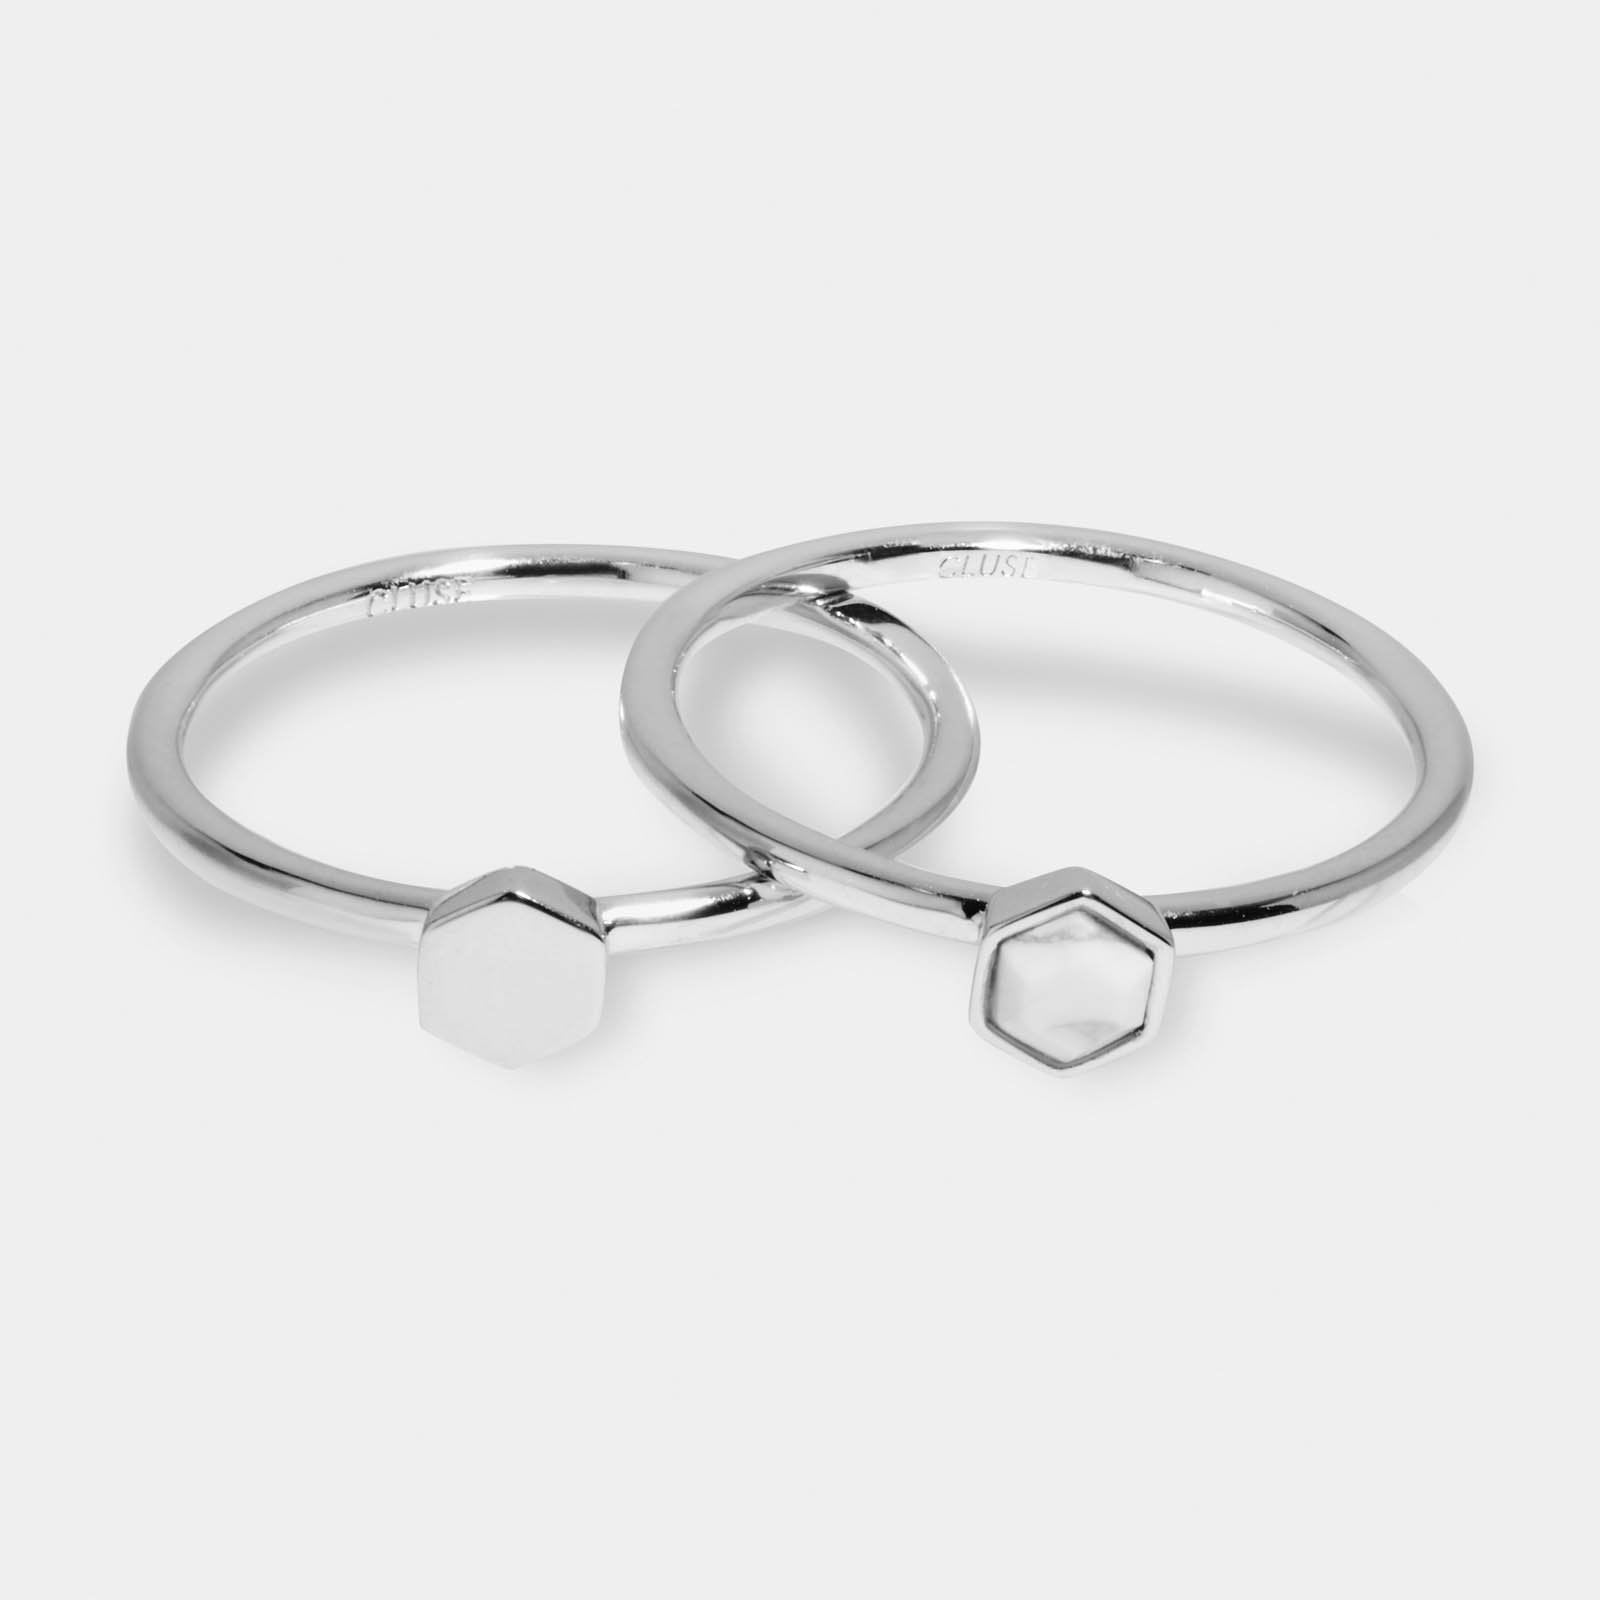 CLUSE Idylle Silver Solid And Marble Hexagon Ring Set-52 CLJ42001-52 - Set di anelli taglia 52